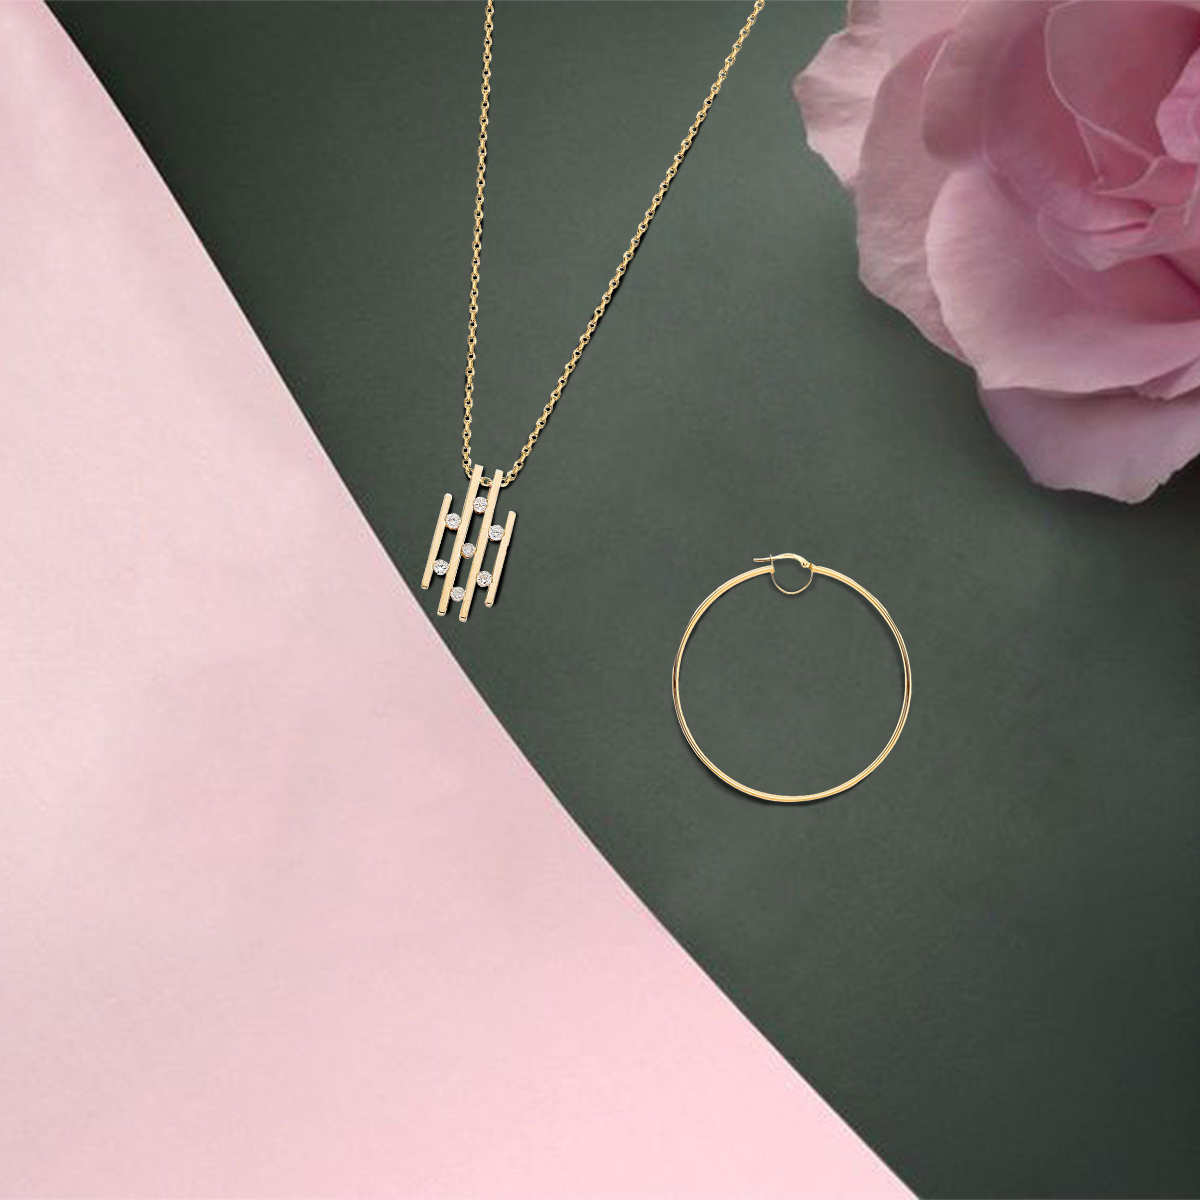 6 Jewellery Trends For Spring 2020